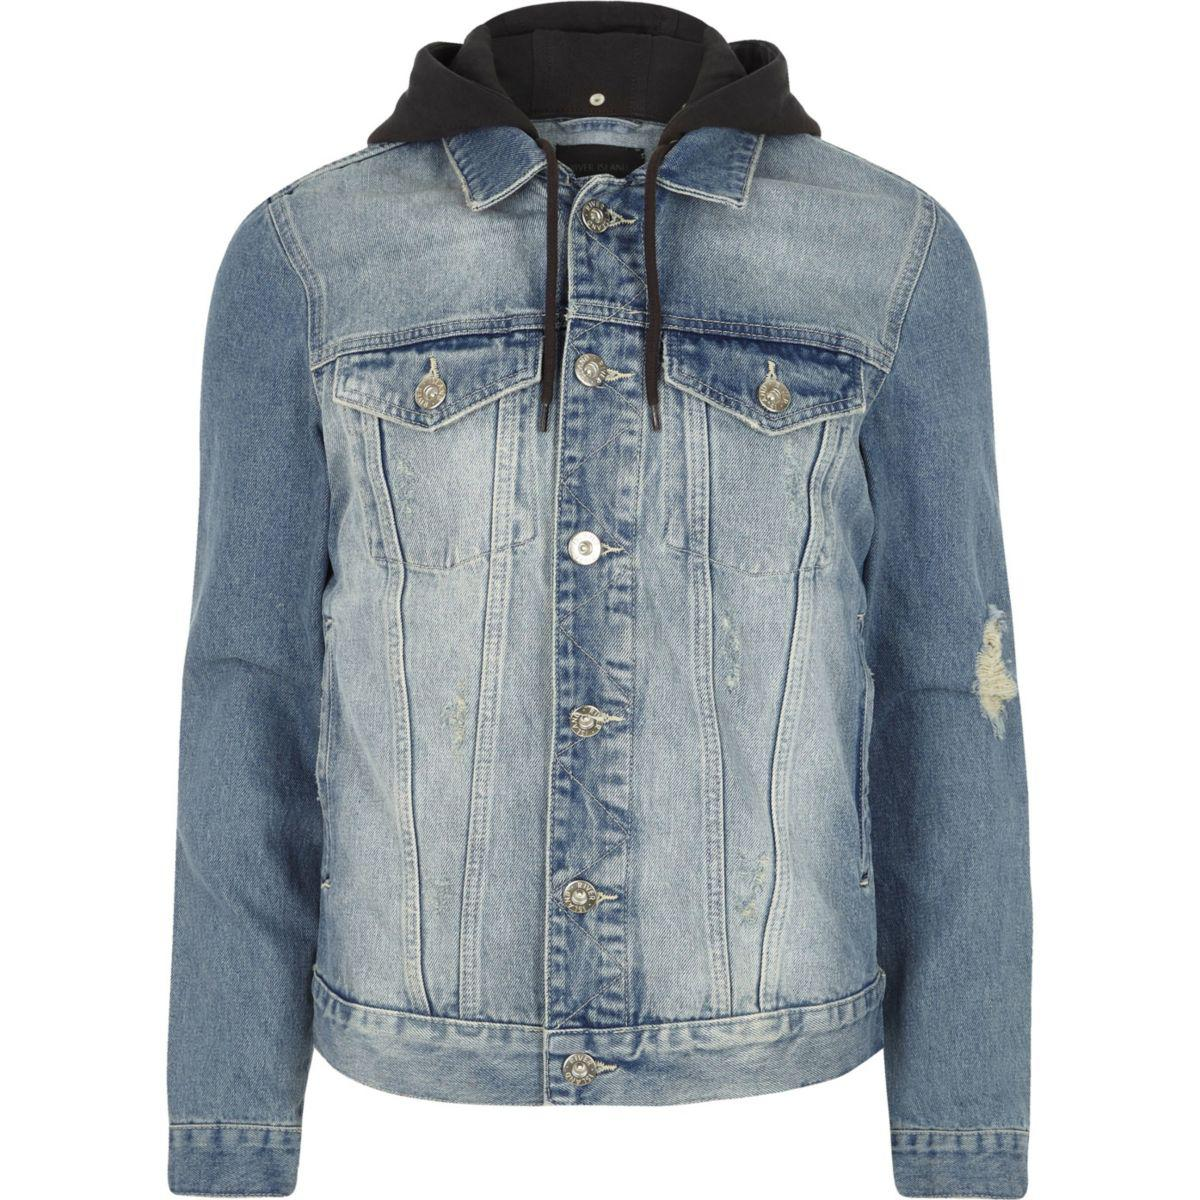 River Island Light Blue Distressed Denim Jacket for Men